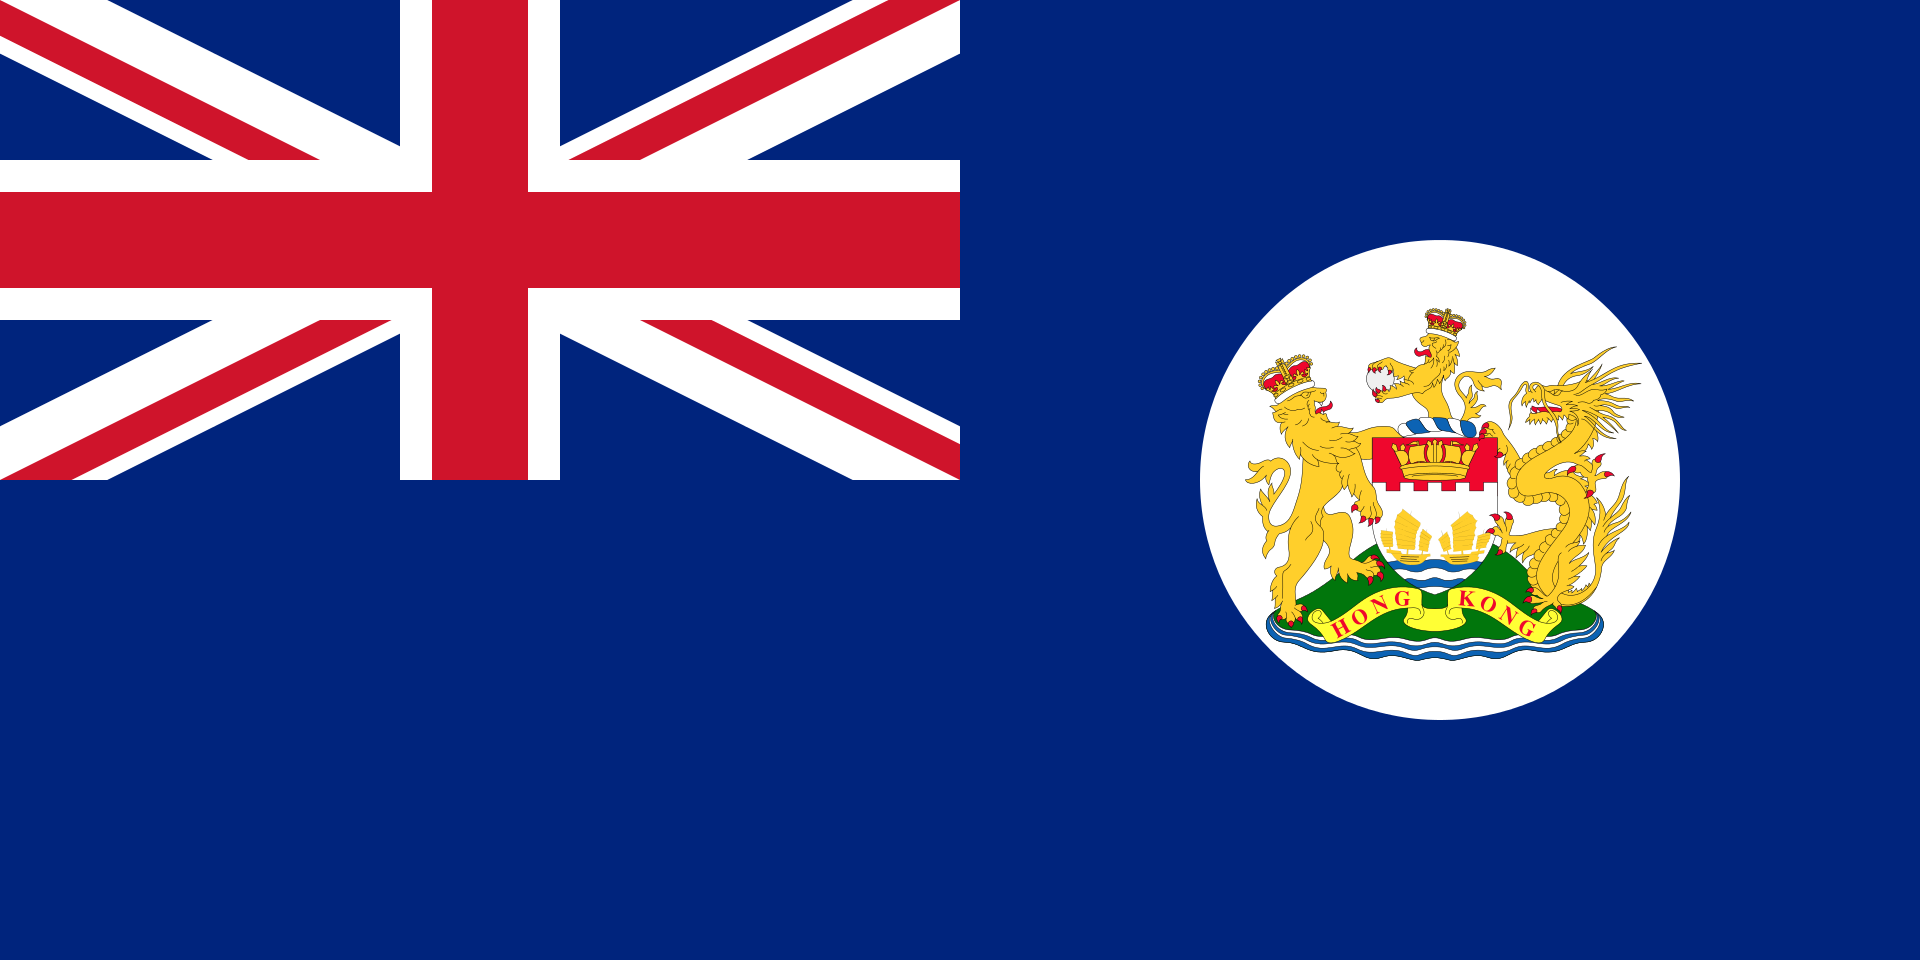 British Hong Kong British Hong Kong Hong Kong Flag Flags Of The World